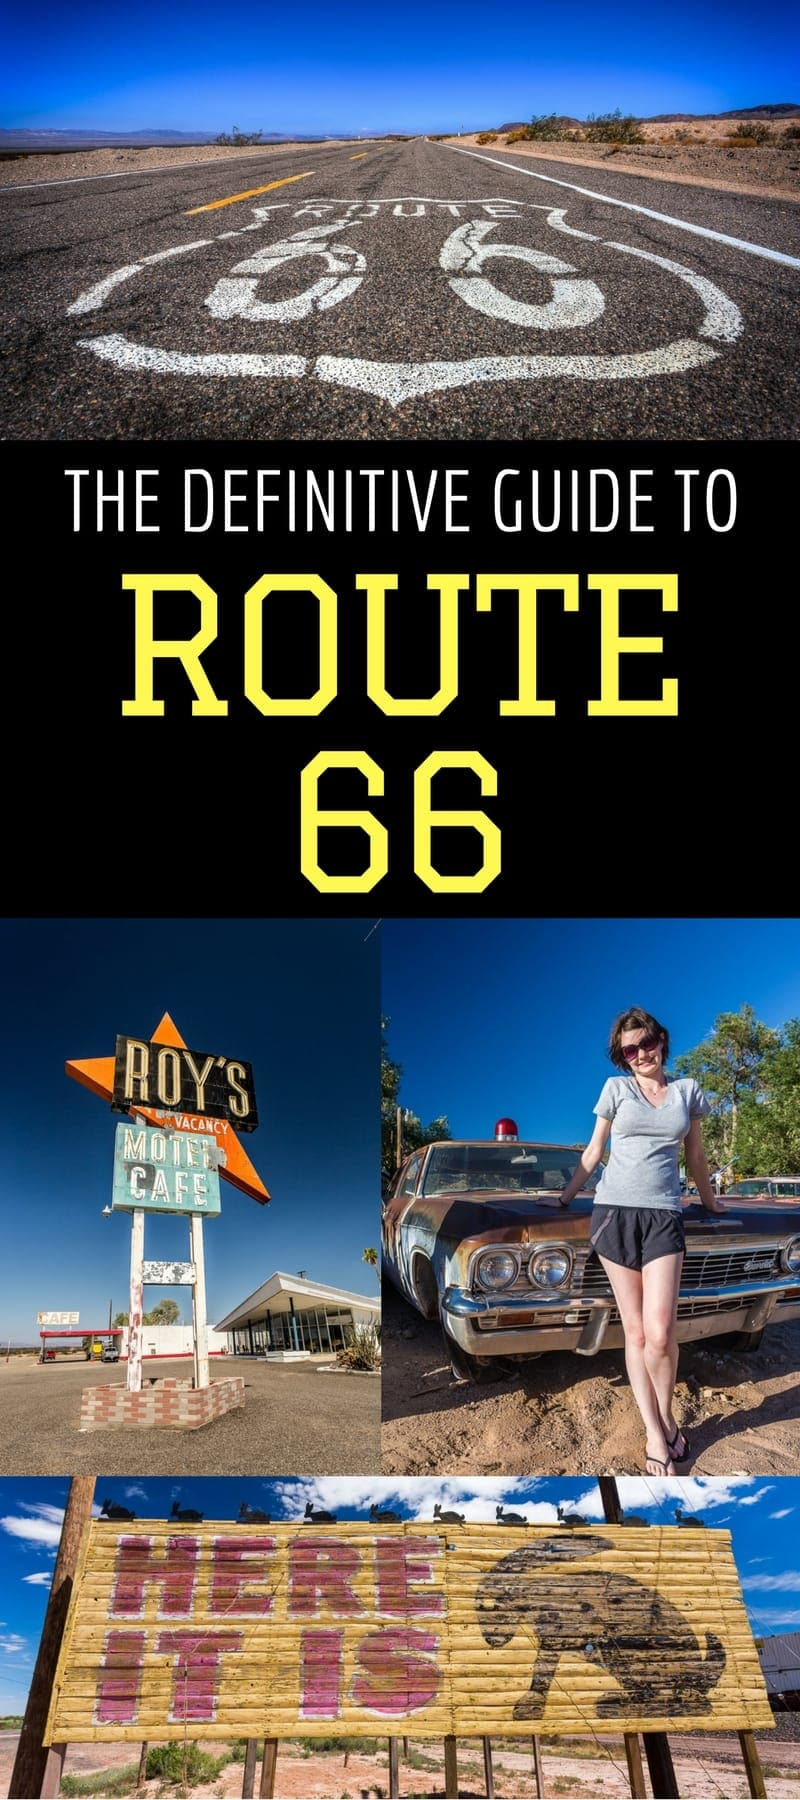 Route 66 En Camping Car : route, camping, Ultimate, Route, Planning, Guide, Independent, Travel